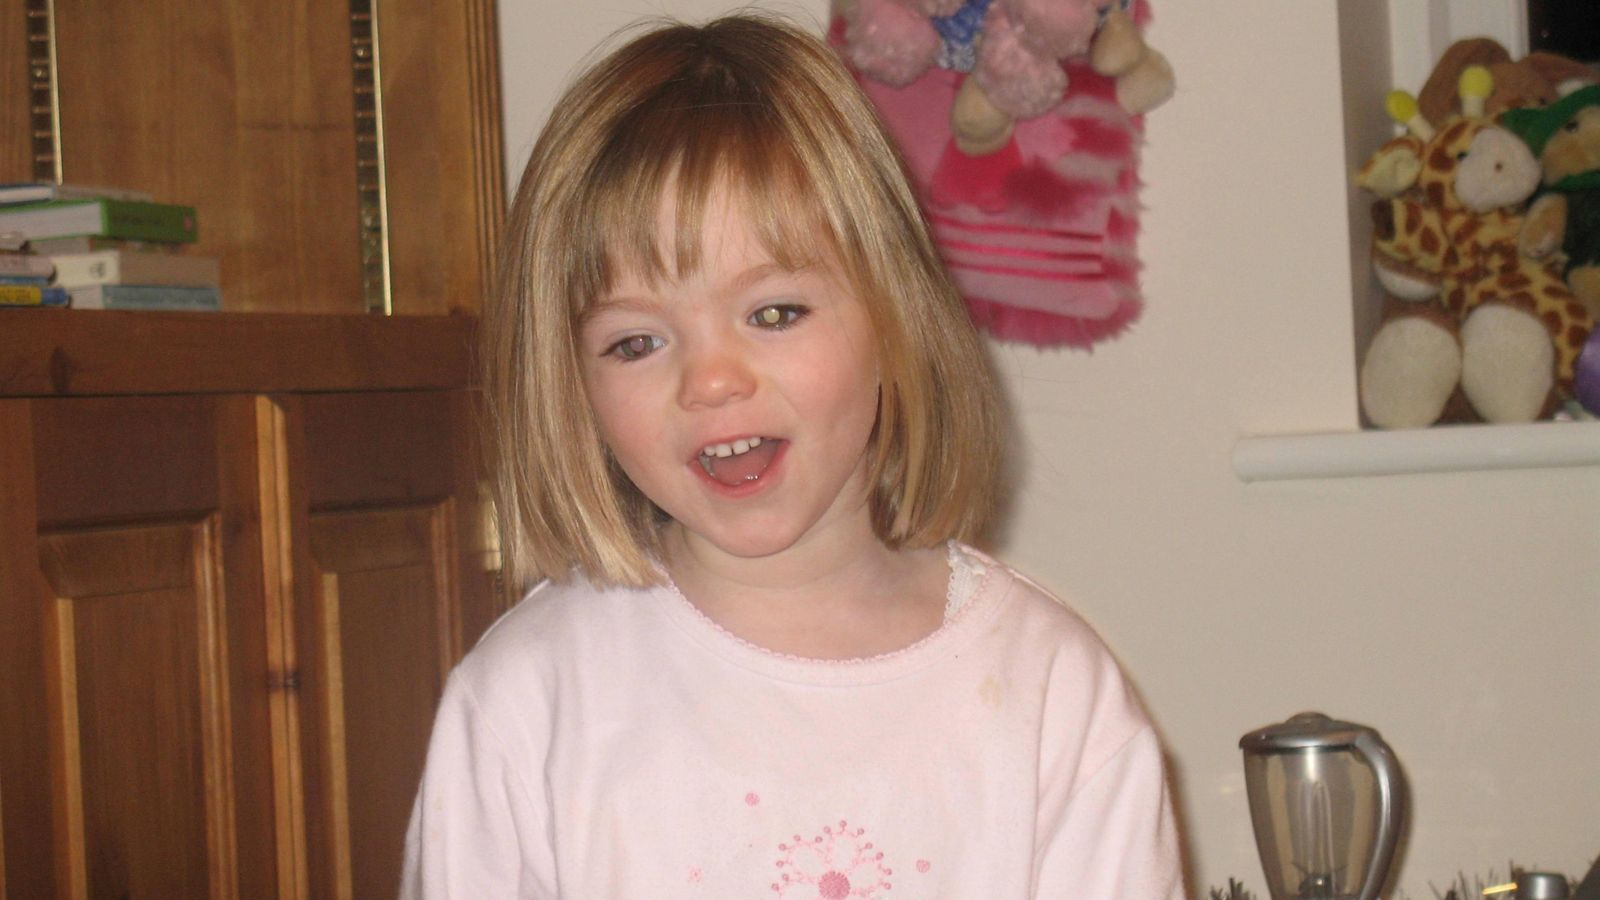 The latest McCann suspect: Scotland Yard has revealed vital new information about a suspect wanted in connection with the disappearance of Madeleine McCann. Skynews-madeleine-mccann-missing-girl_5005120